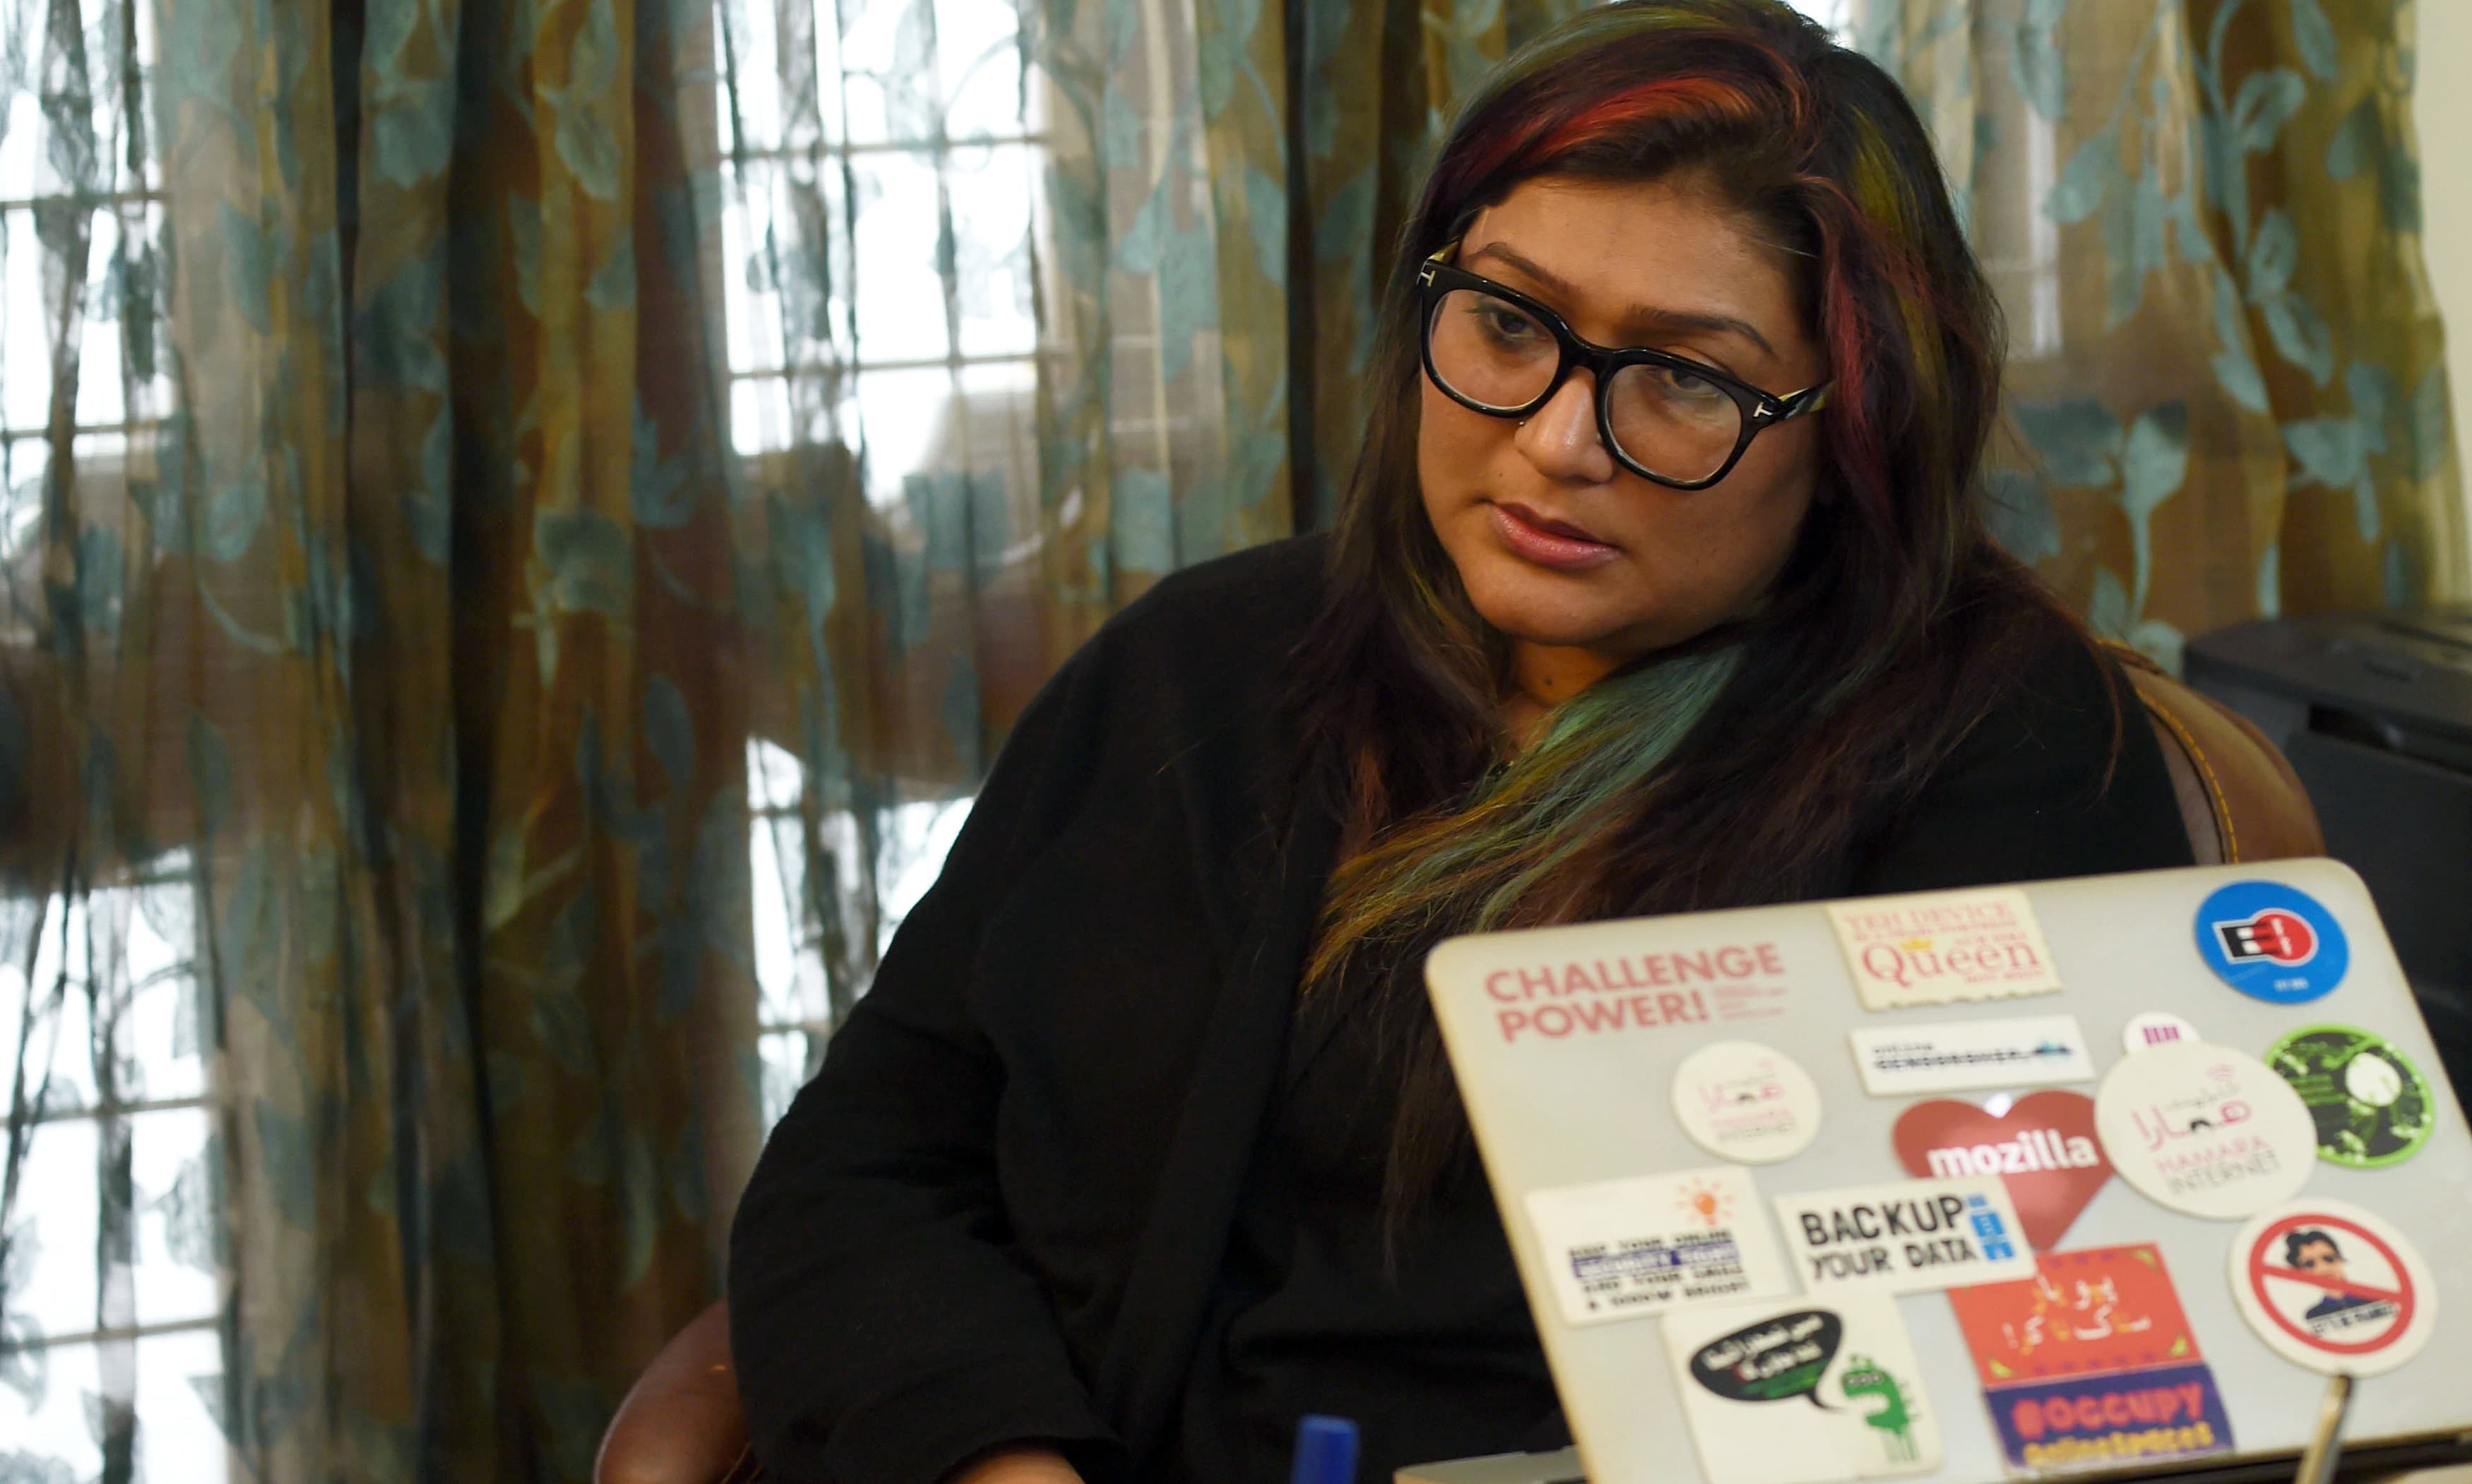 Nighat Dad, making safe online space for women possible